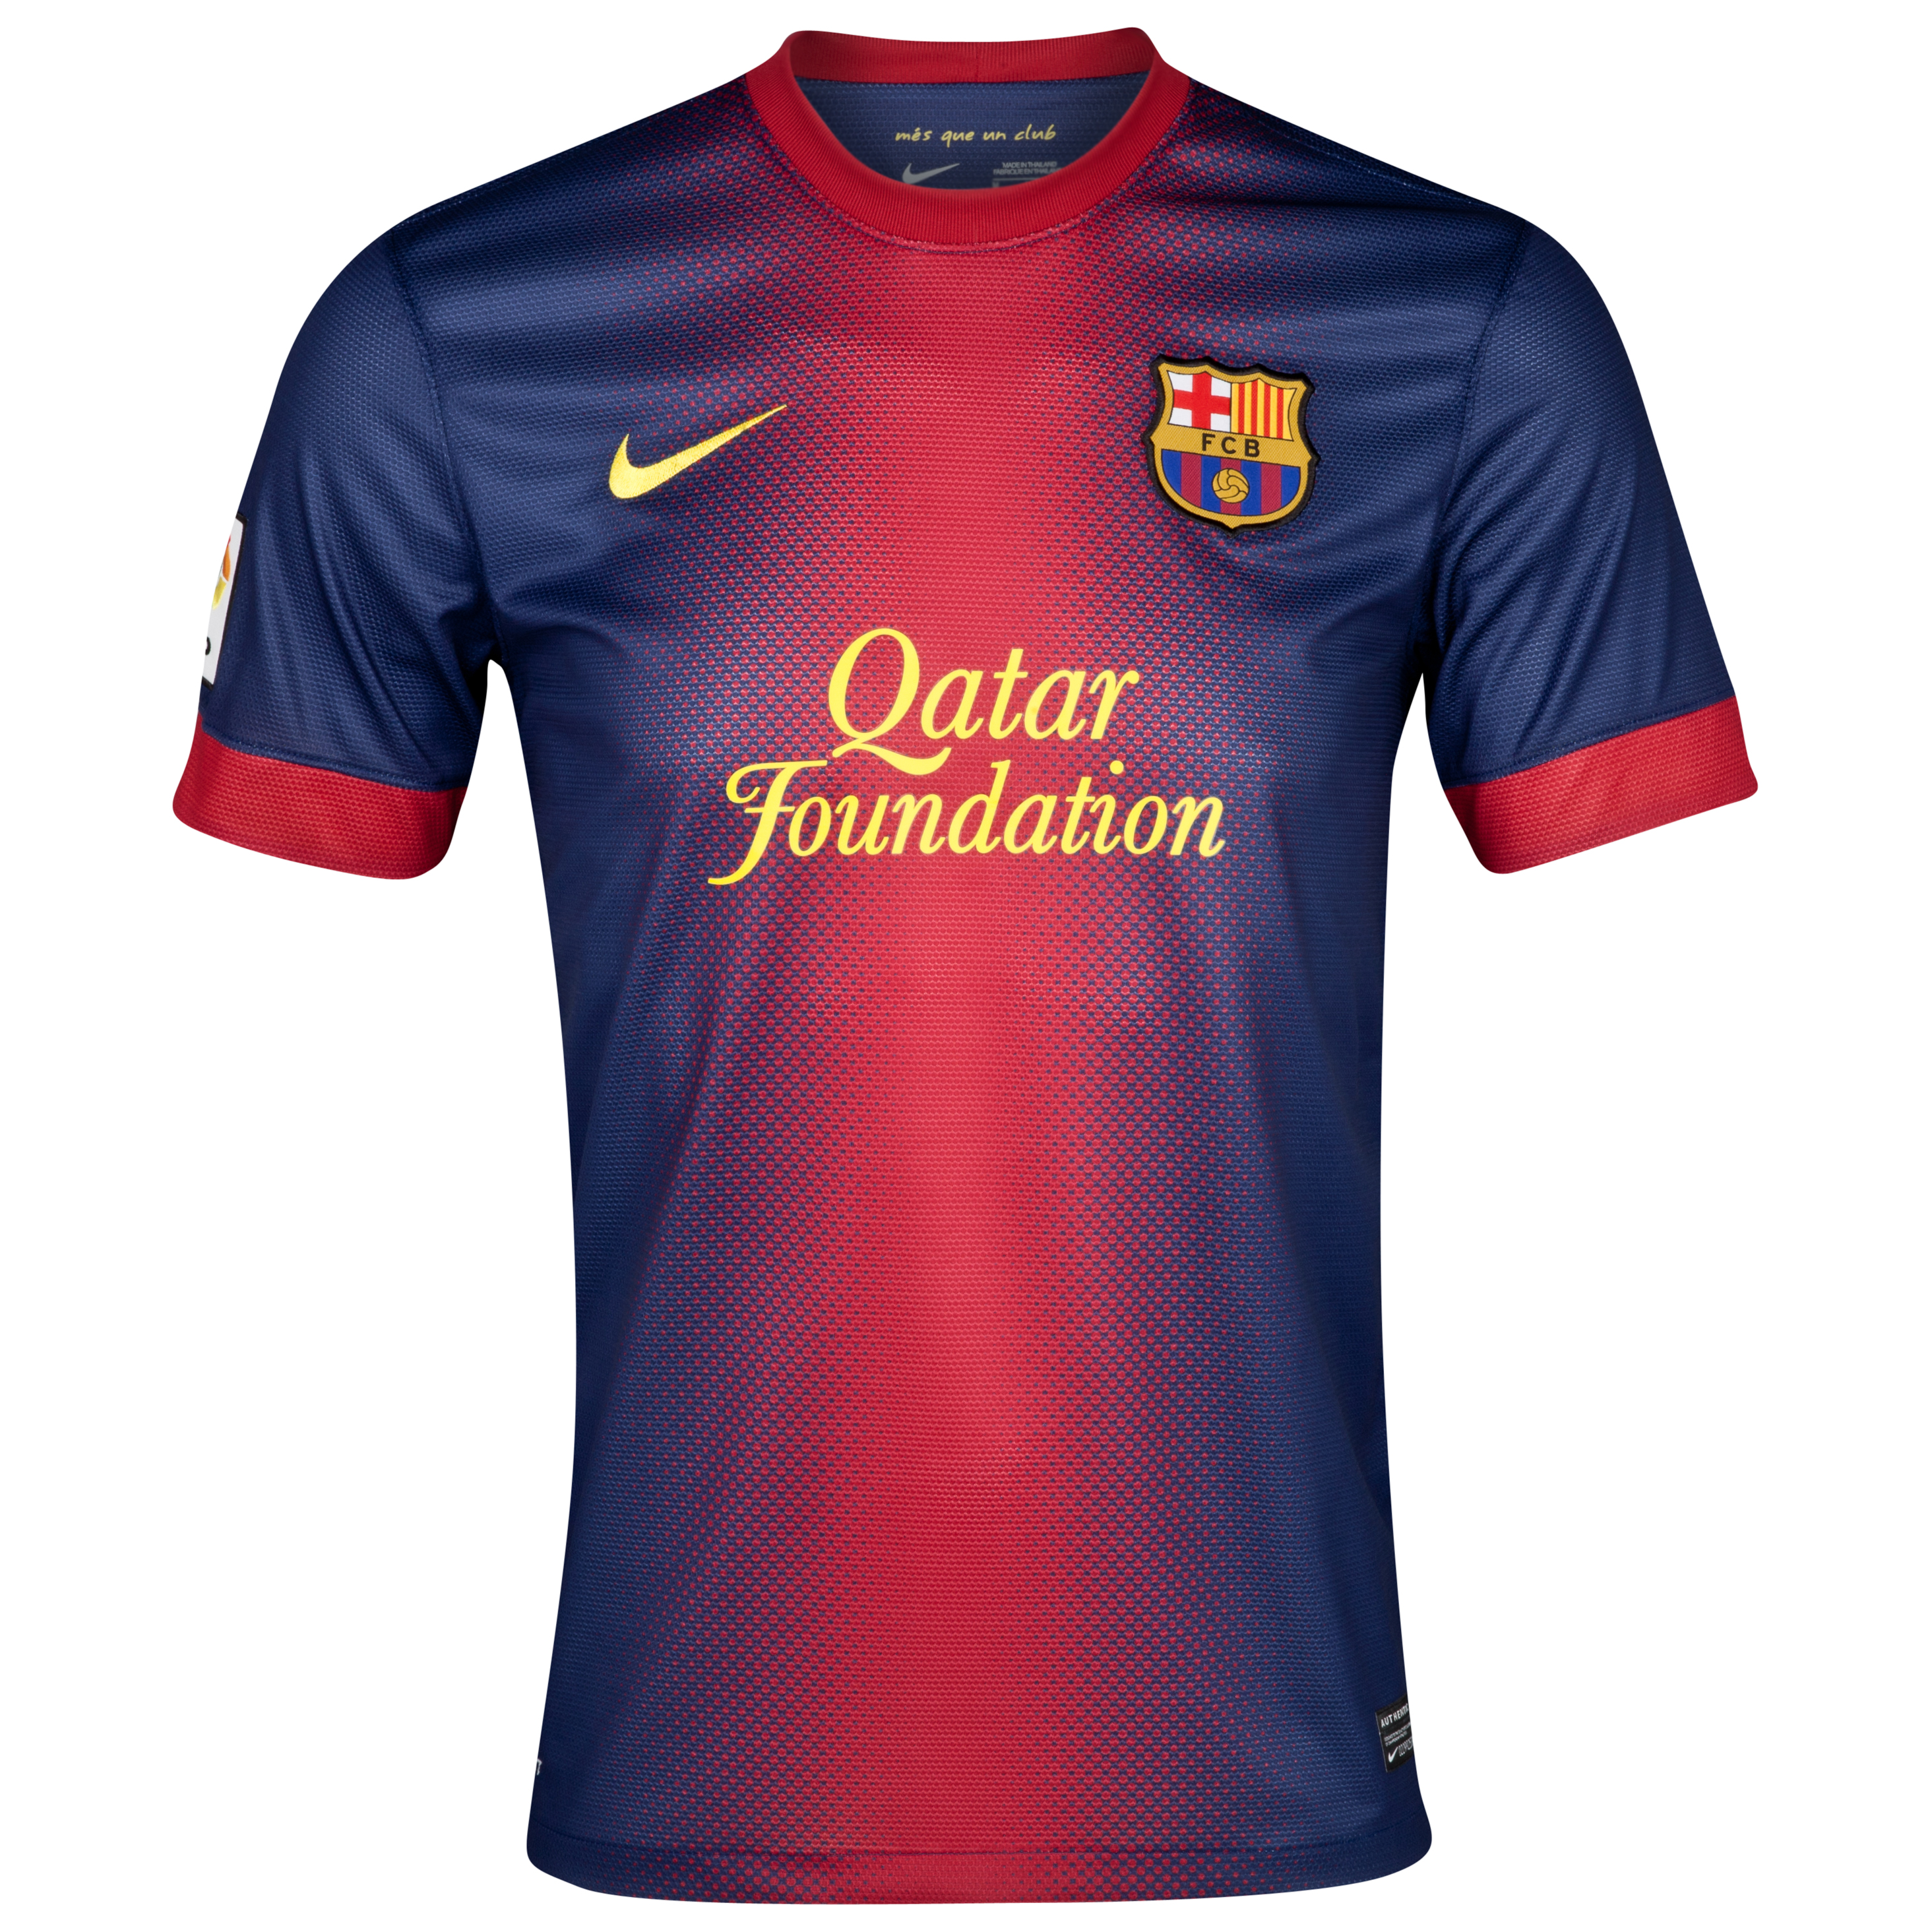 Barcelona Home Shirt 2012/13 - Youths with Fabregas 4 printing. for 50€